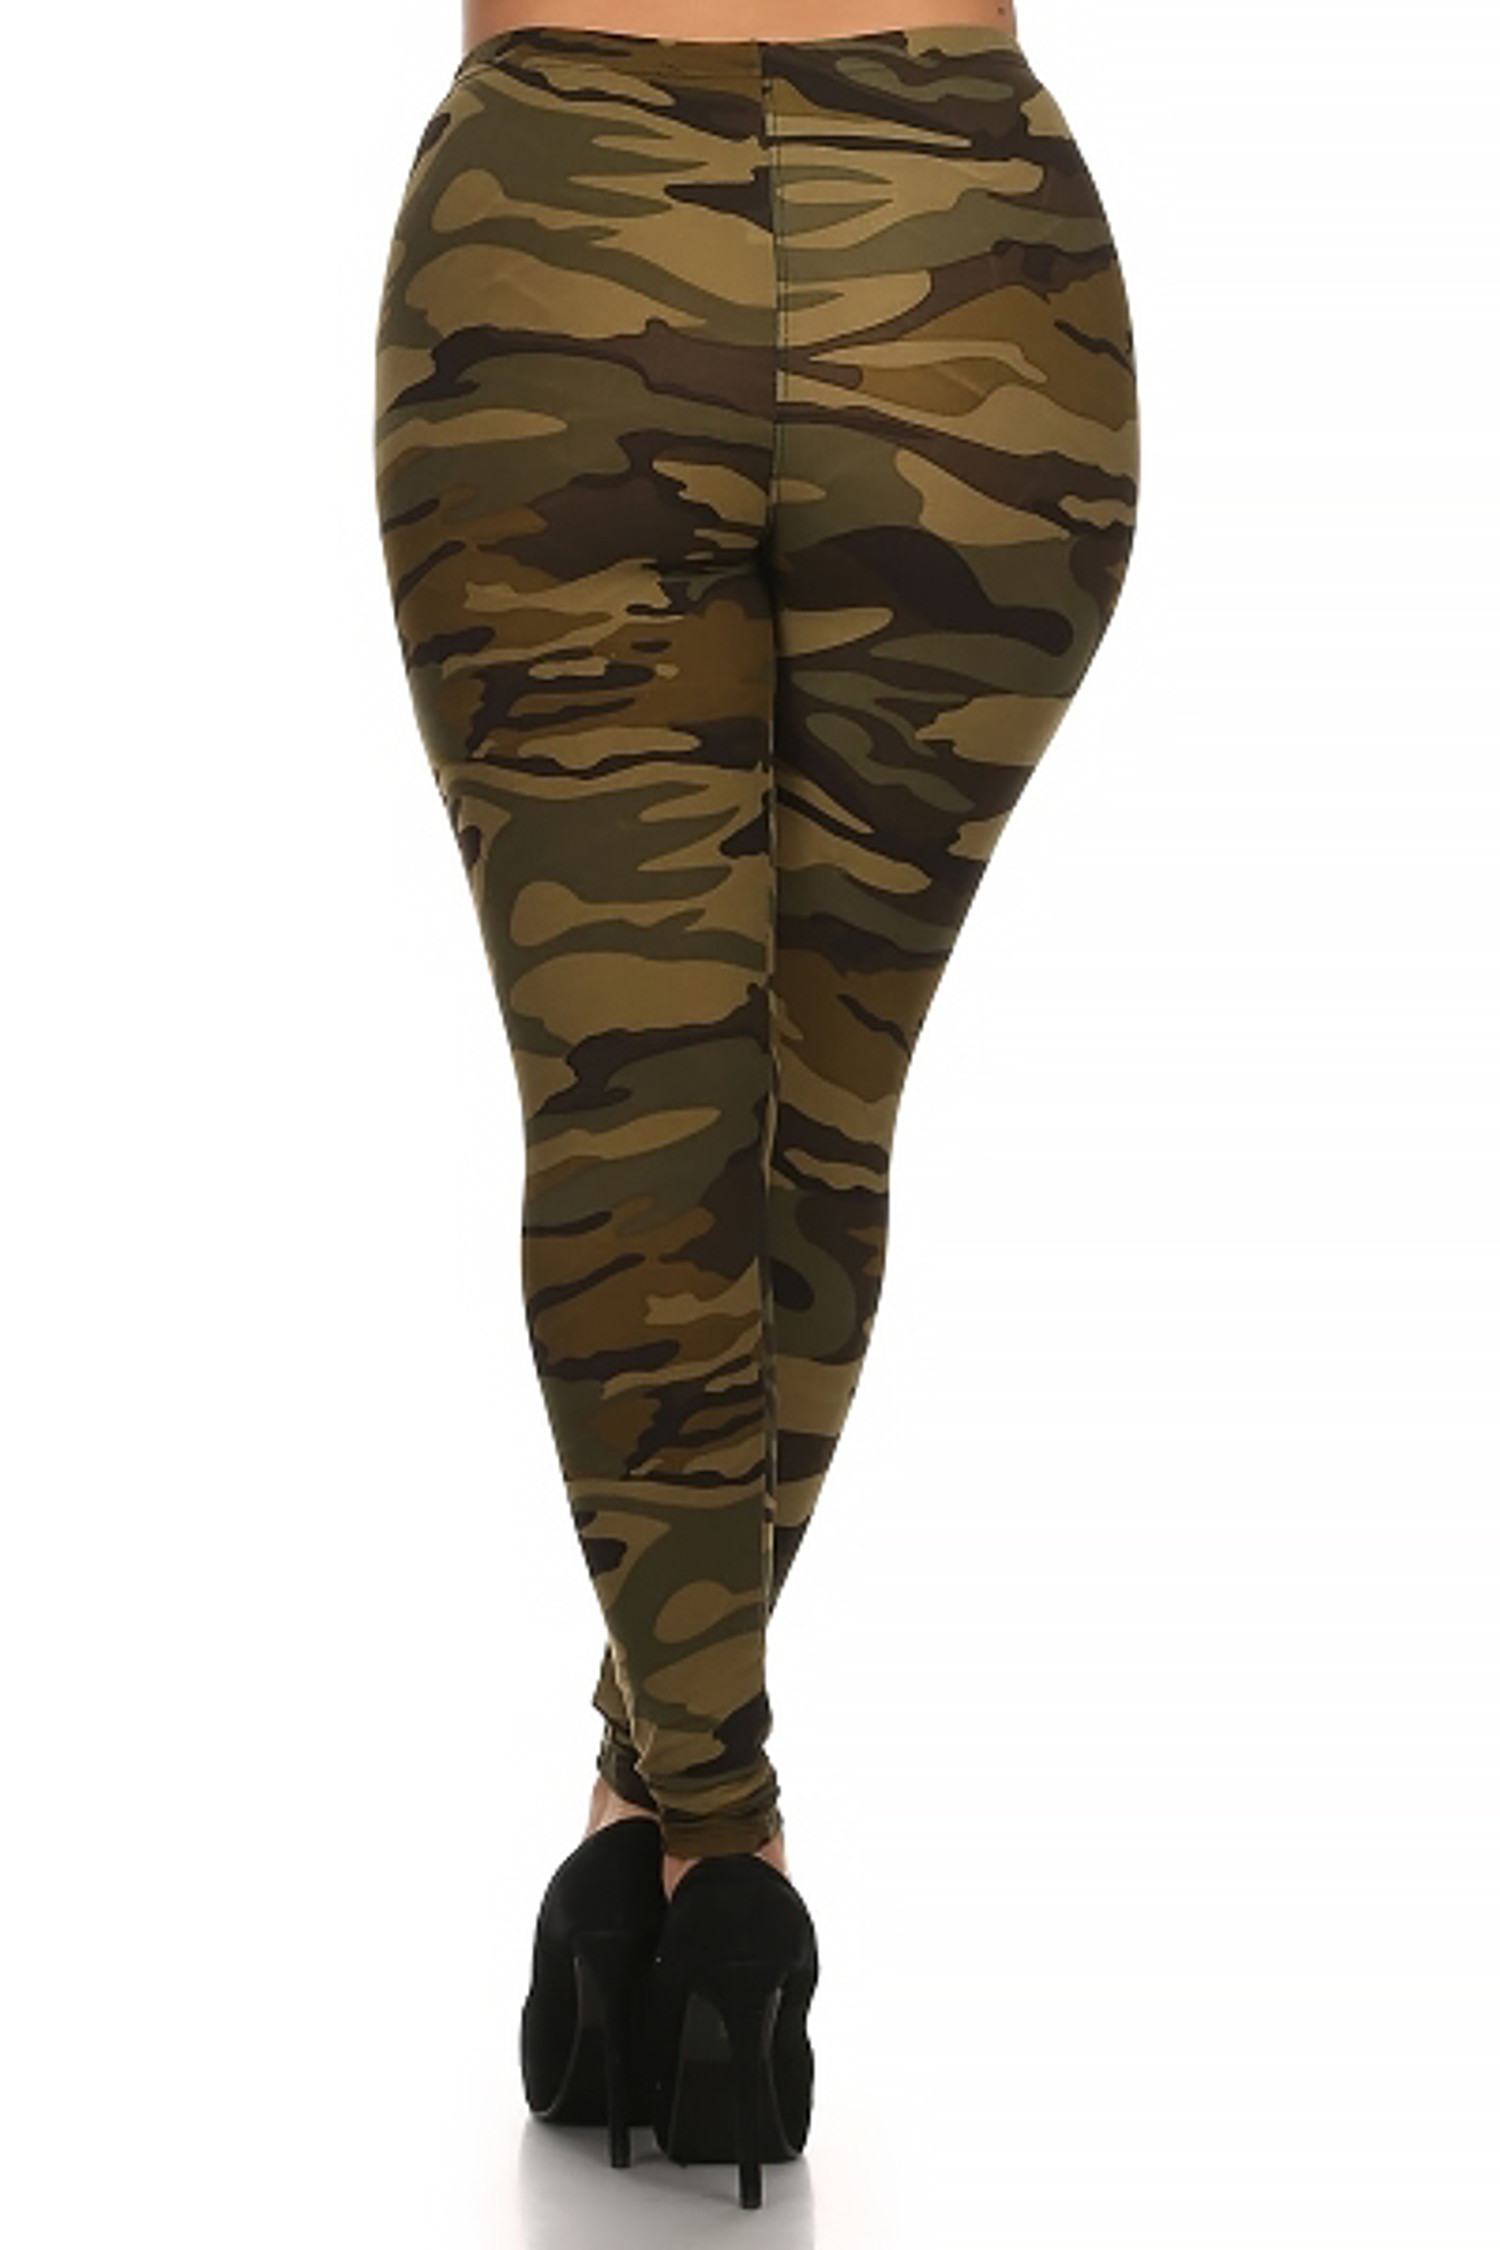 Green Camouflage Plus Size Leggings